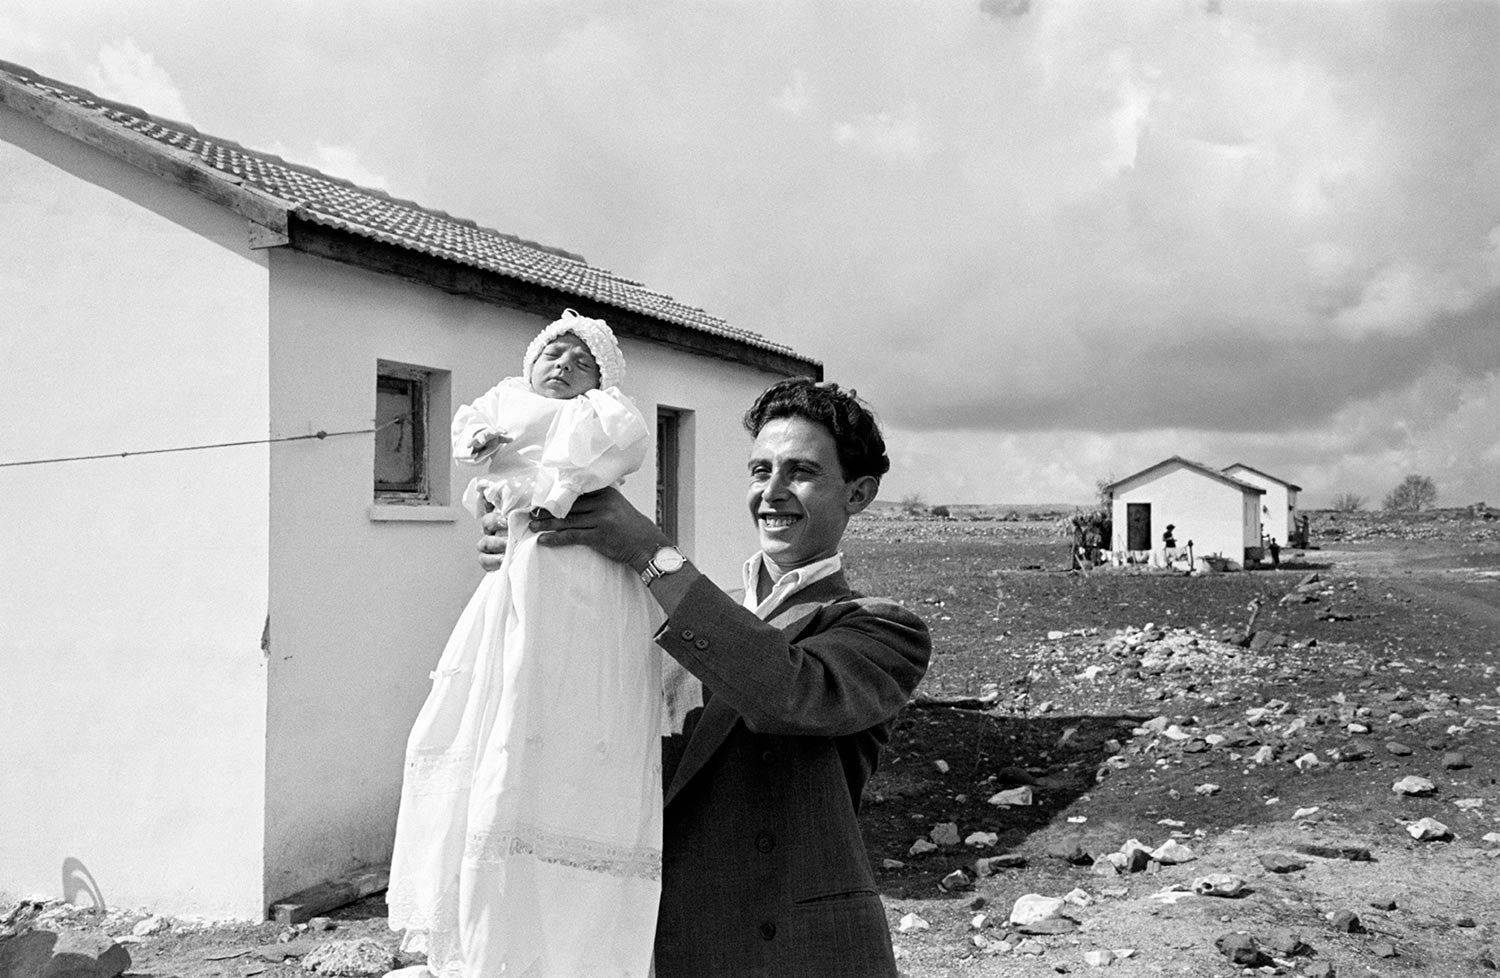 The first child, Alma, Israel, 1951.